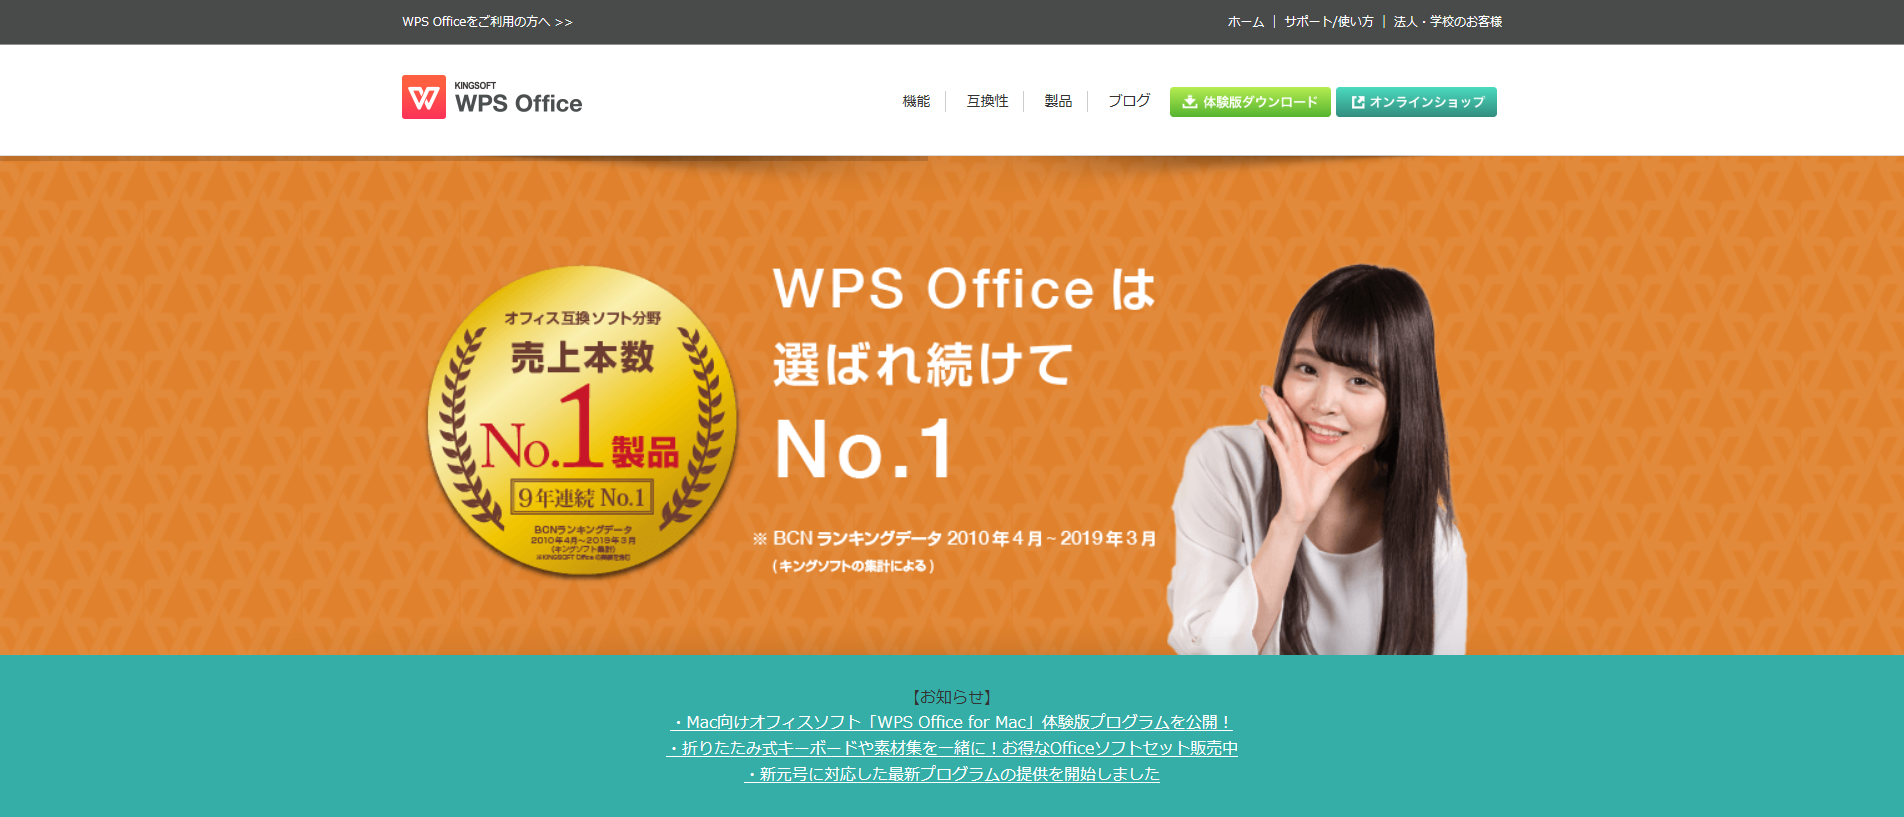 WPS Office とは?マイクロソフト Office との違い・比較